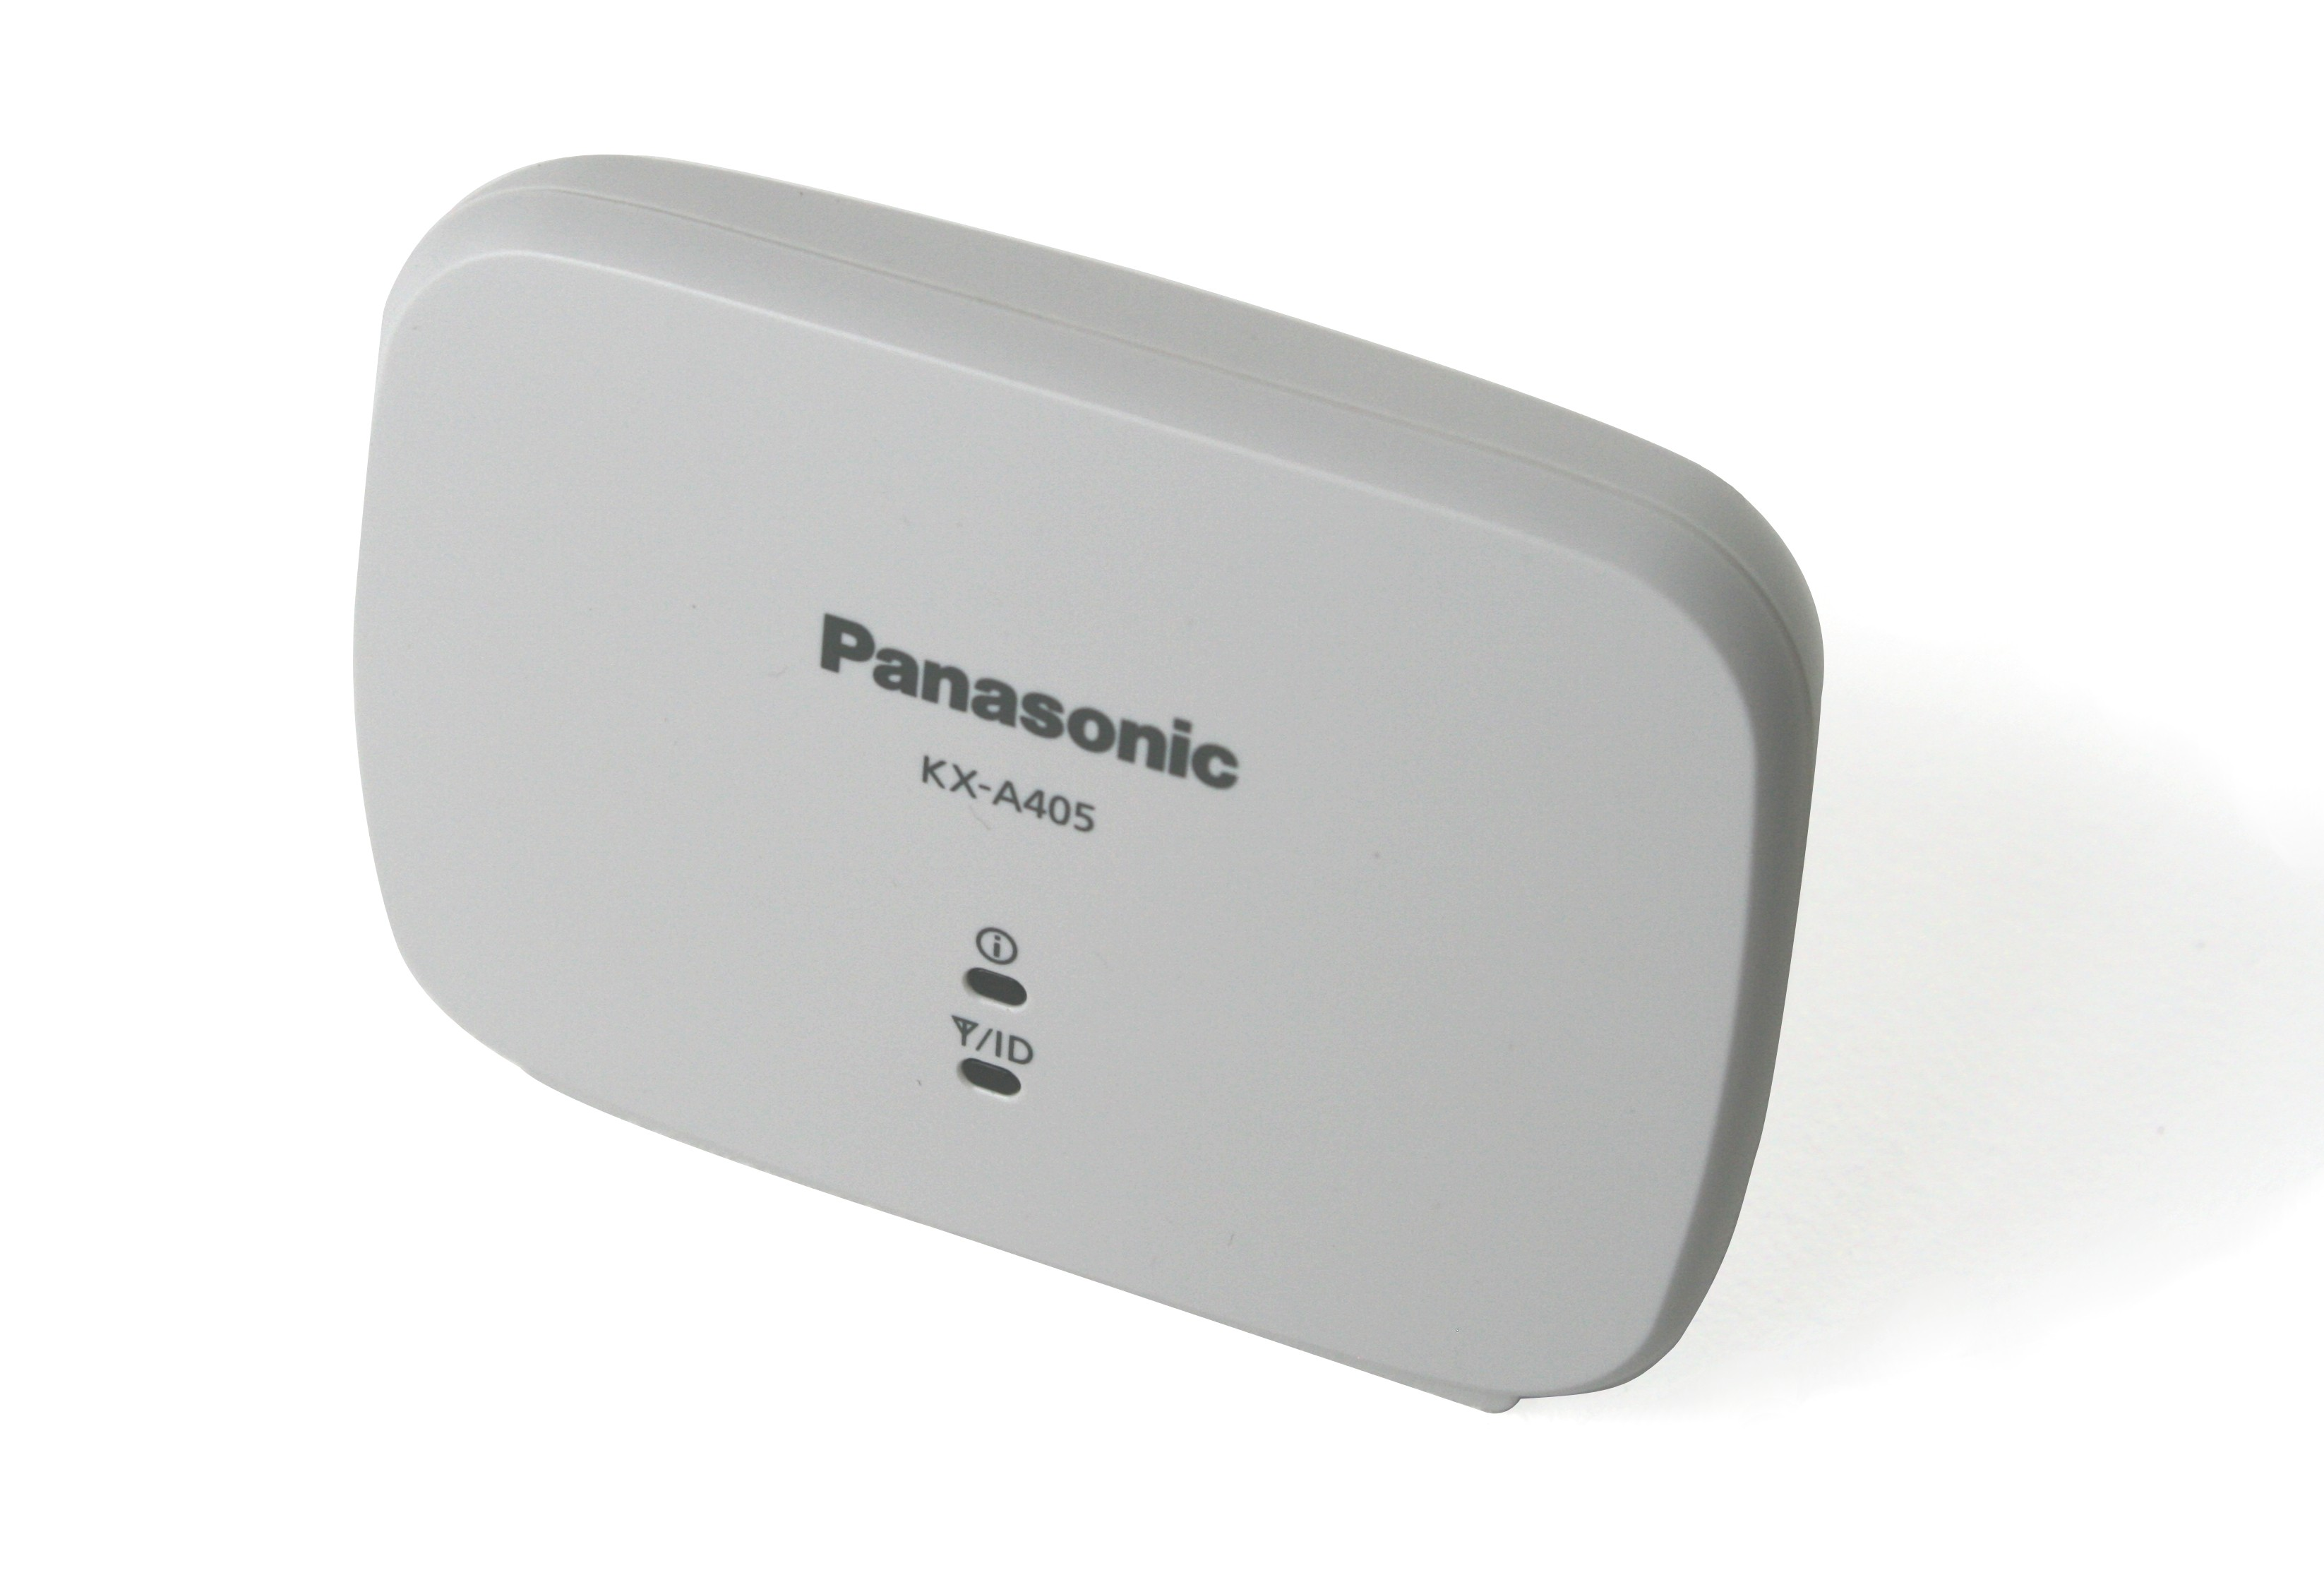 Panasonic KX-A405UK Commercial DECT Repeater